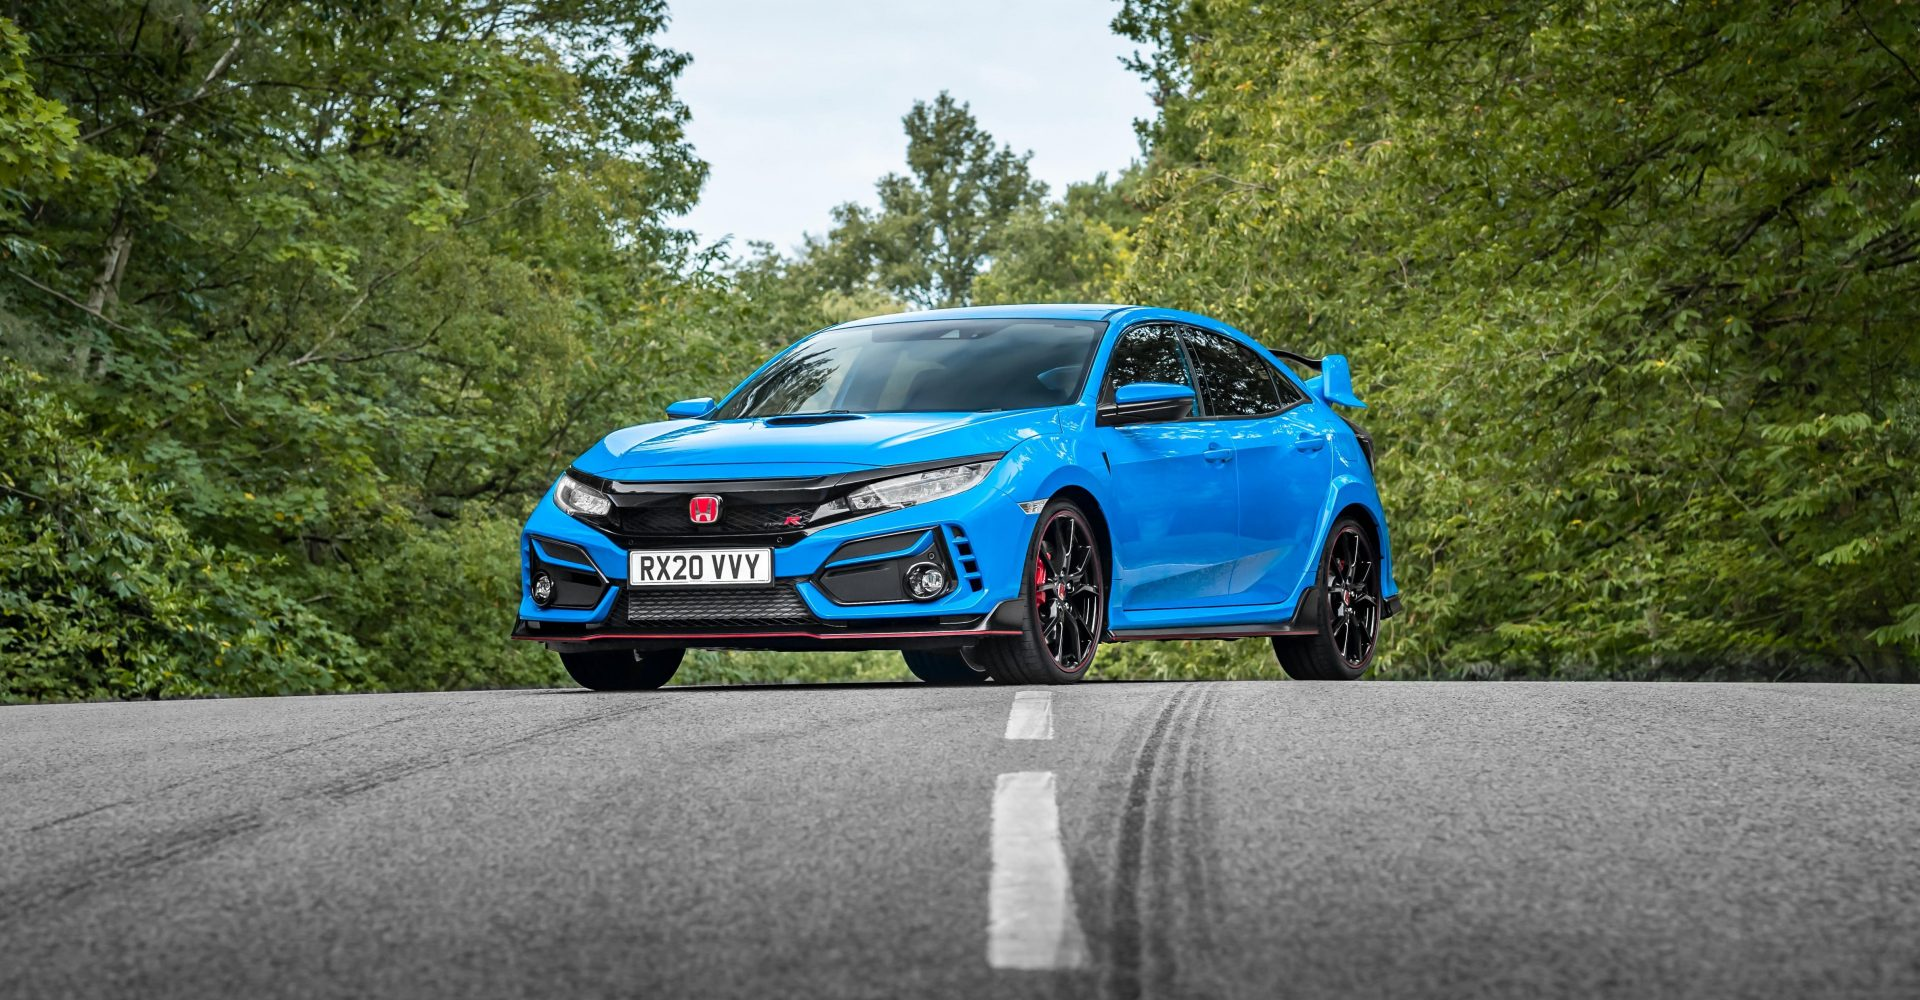 UK Drive: The updated Honda Civic Type R means the best just got better